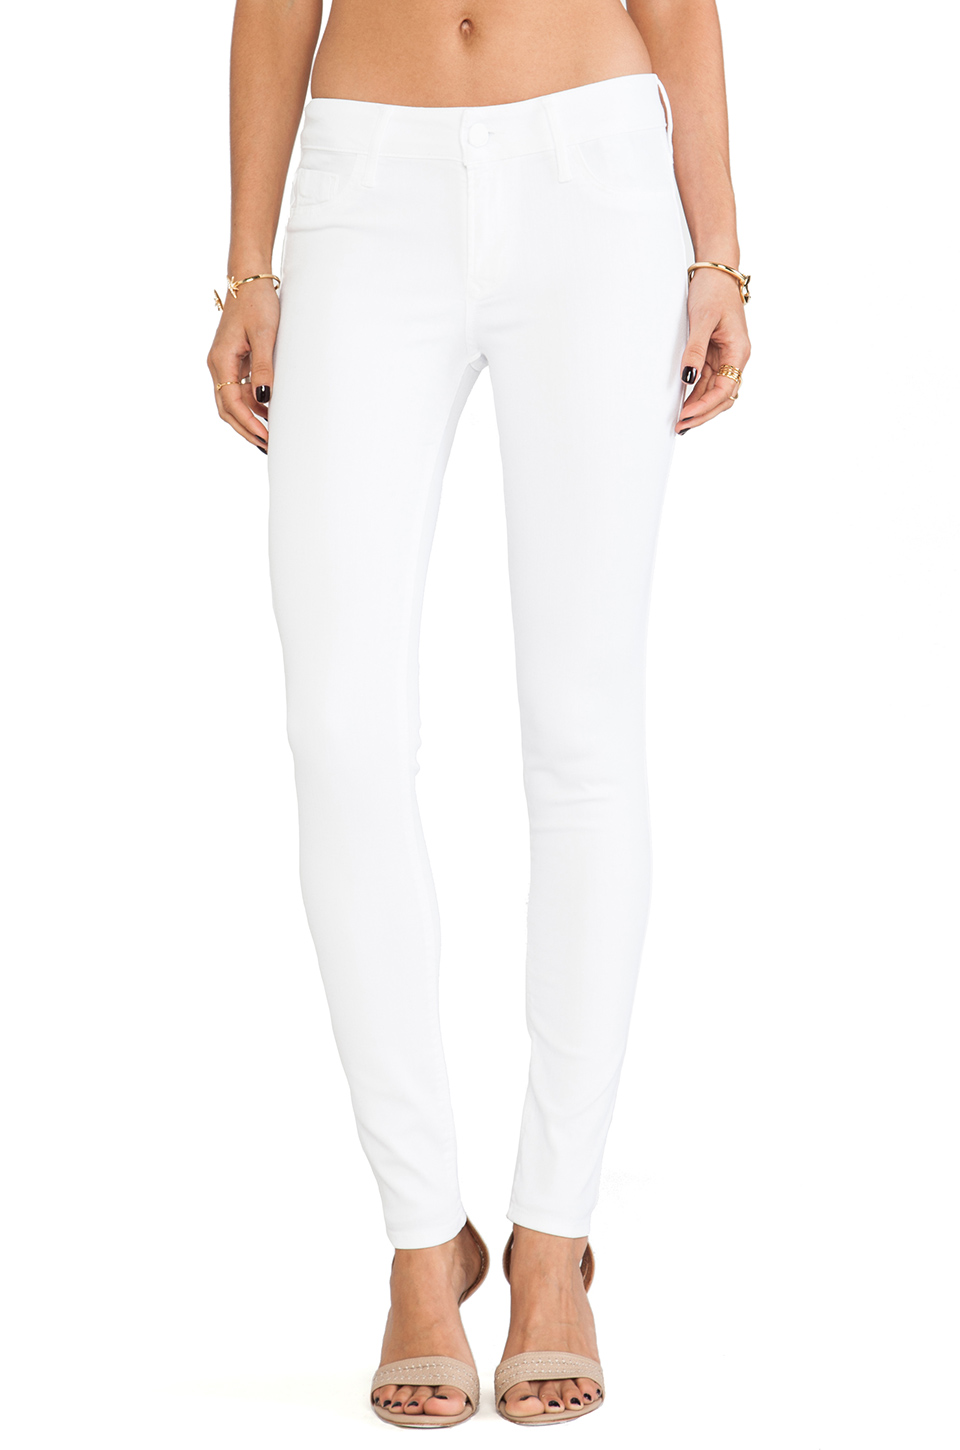 Black Orchid Mid Rise Skinny in Snow White   REVOLVE